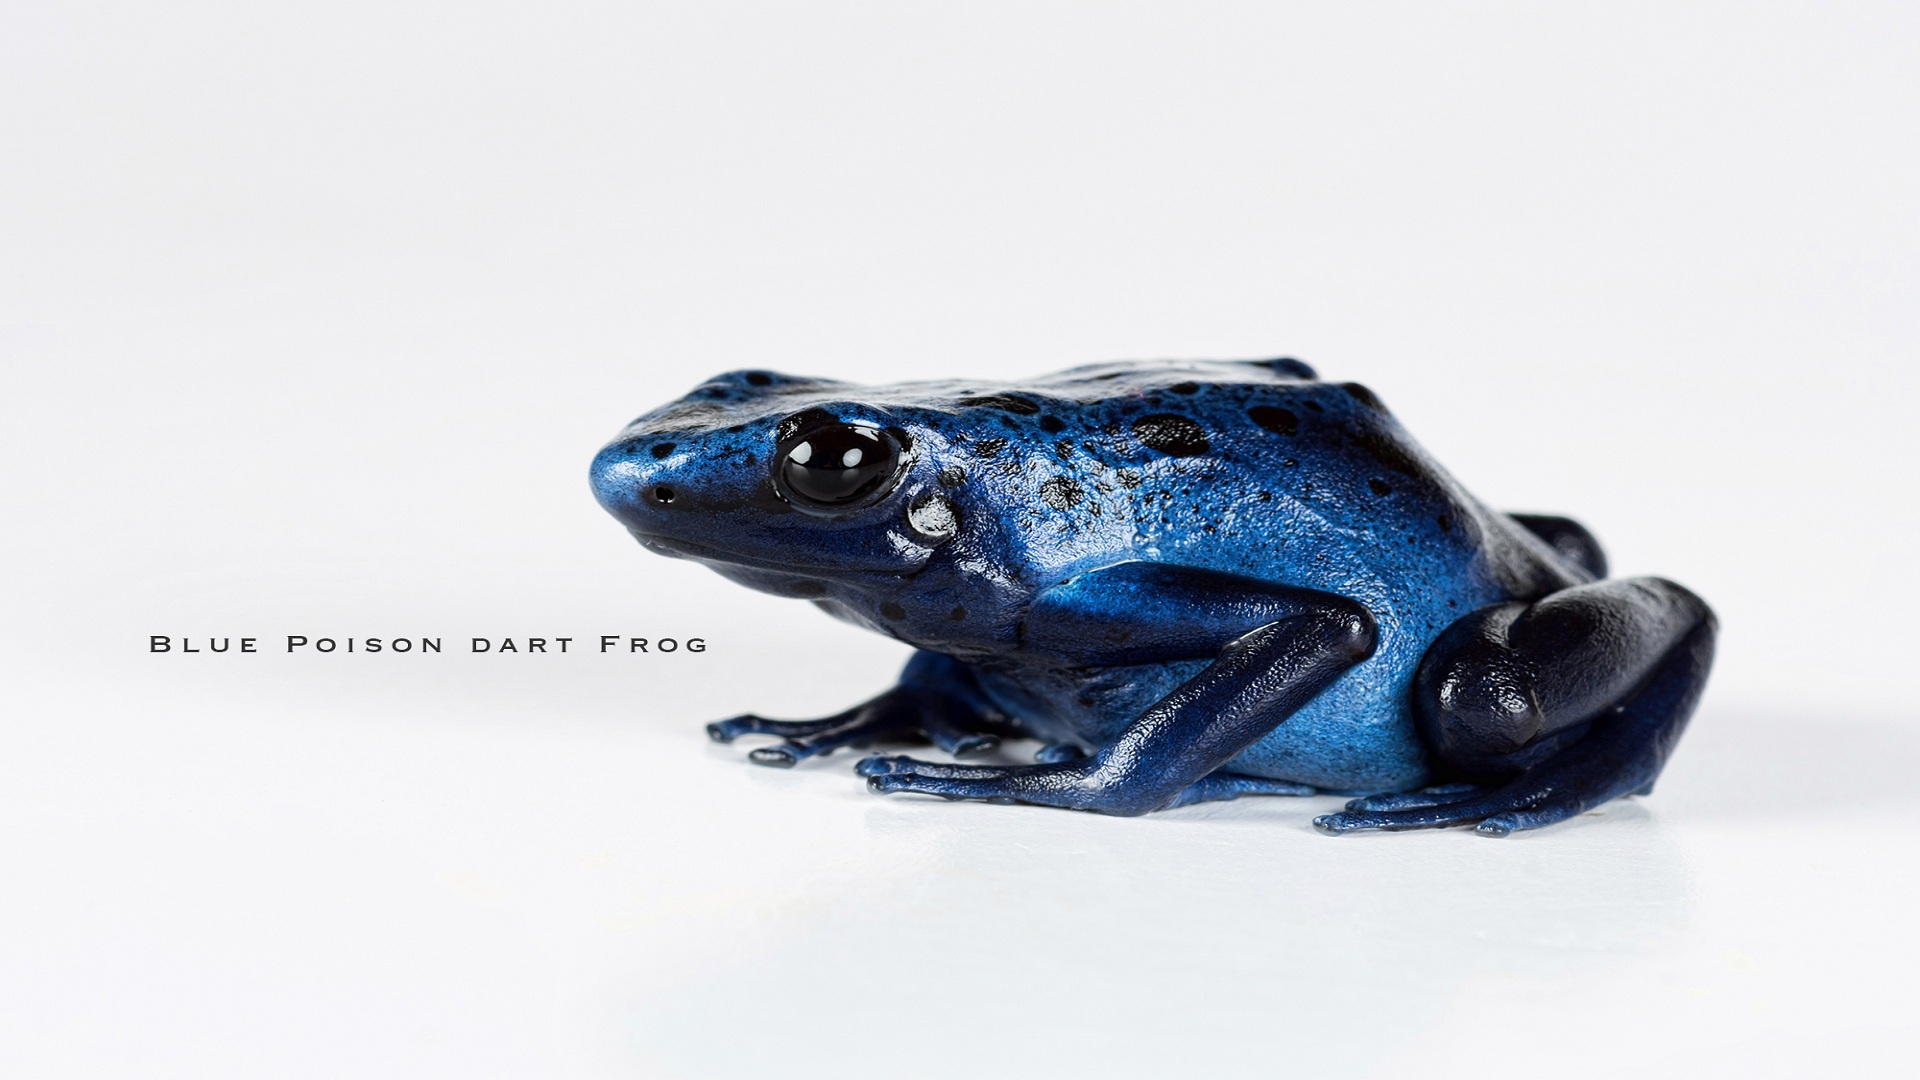 Wow-Blue-poison-Dart-Frog-1920-x-1080-Need-iPhone-S-Plus-Background-for-I-wallpaper-wpc58010454